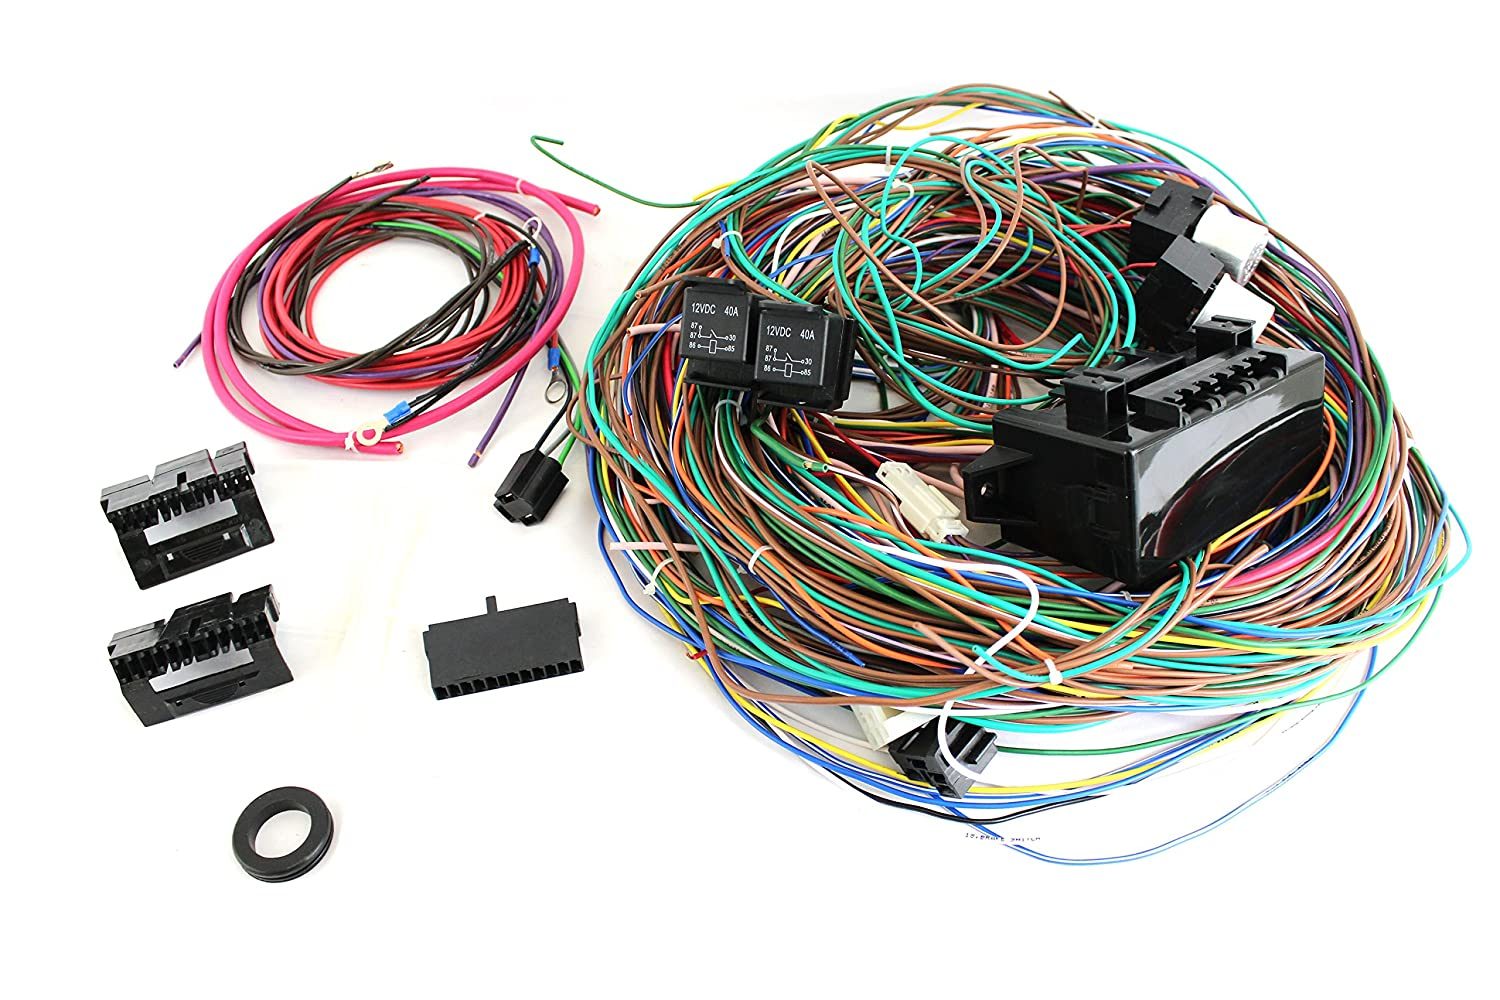 91YoamXFx2L._SL1500_ amazon com 12v 24 circuit 15 fuse street hot rat rod wiring street rod wiring harness at cos-gaming.co